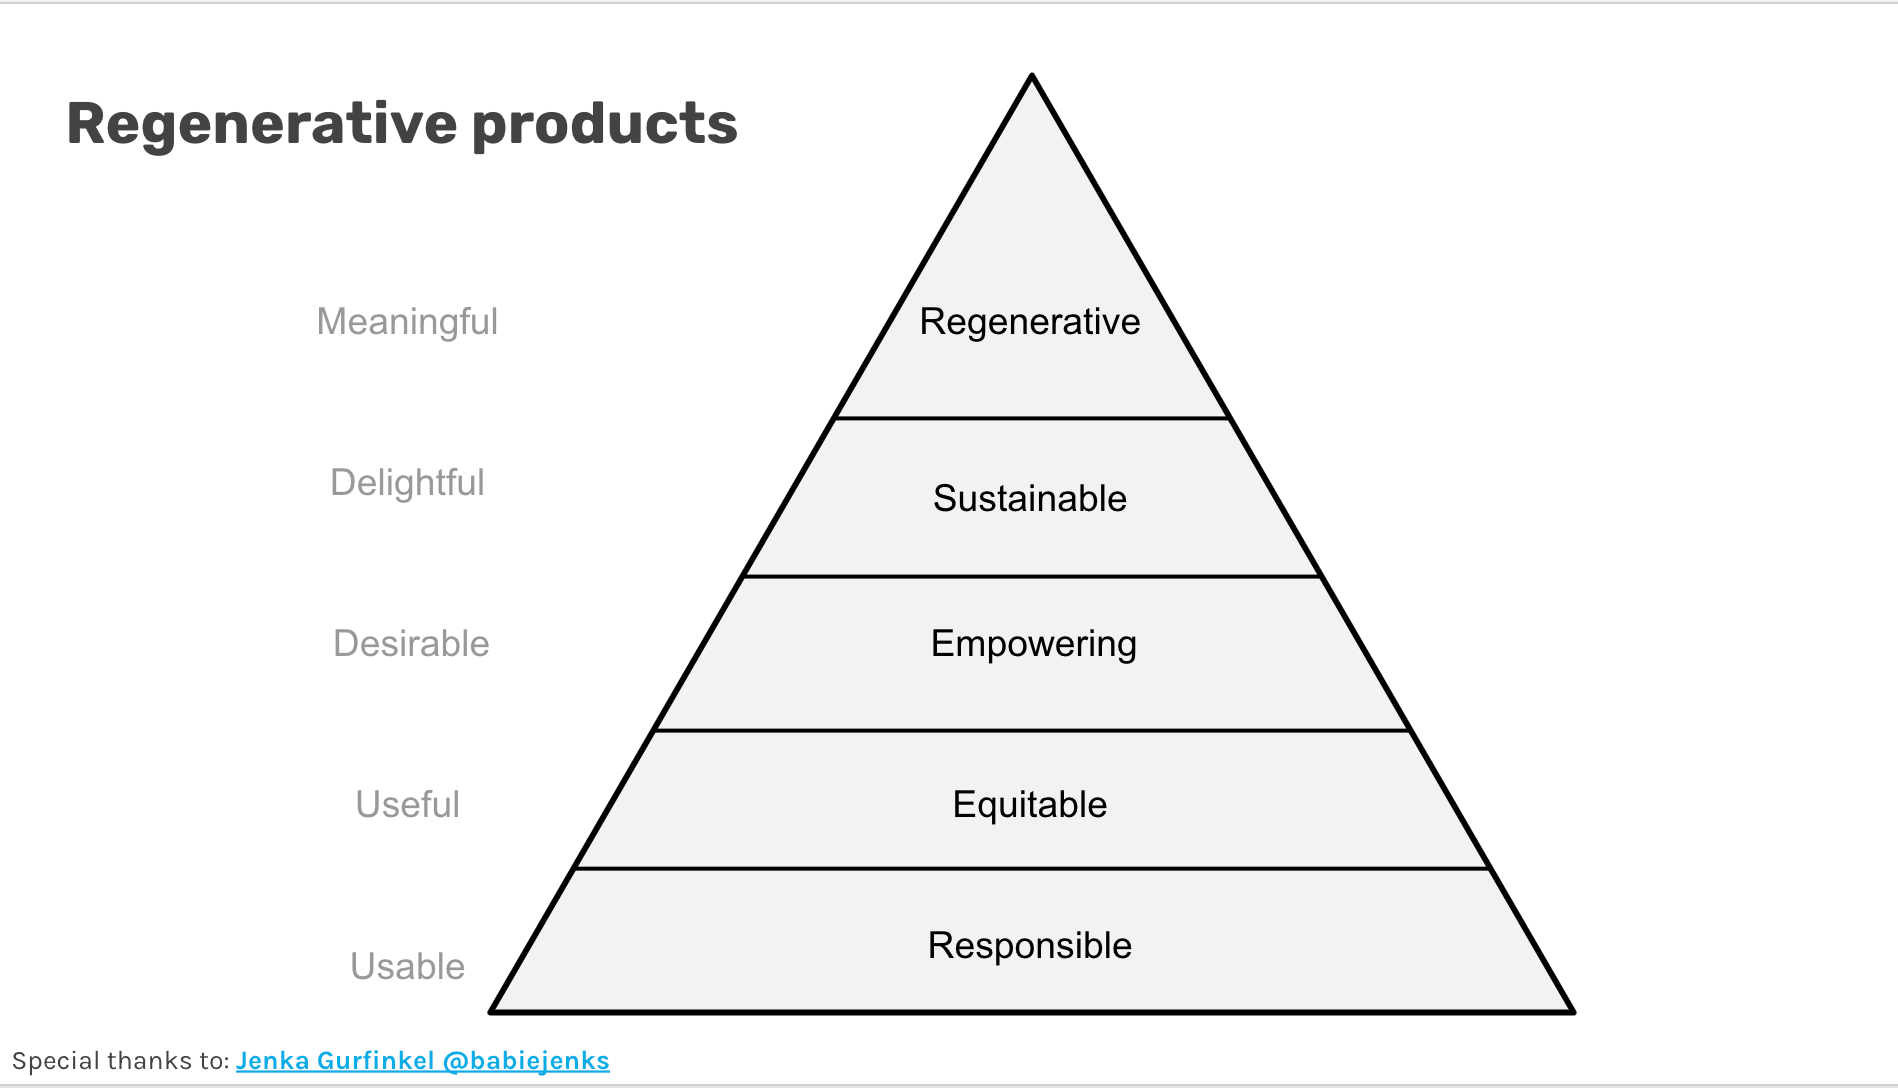 Strive for products that are responsible, equitable, empowering, sustainable and ultimately regenerative.